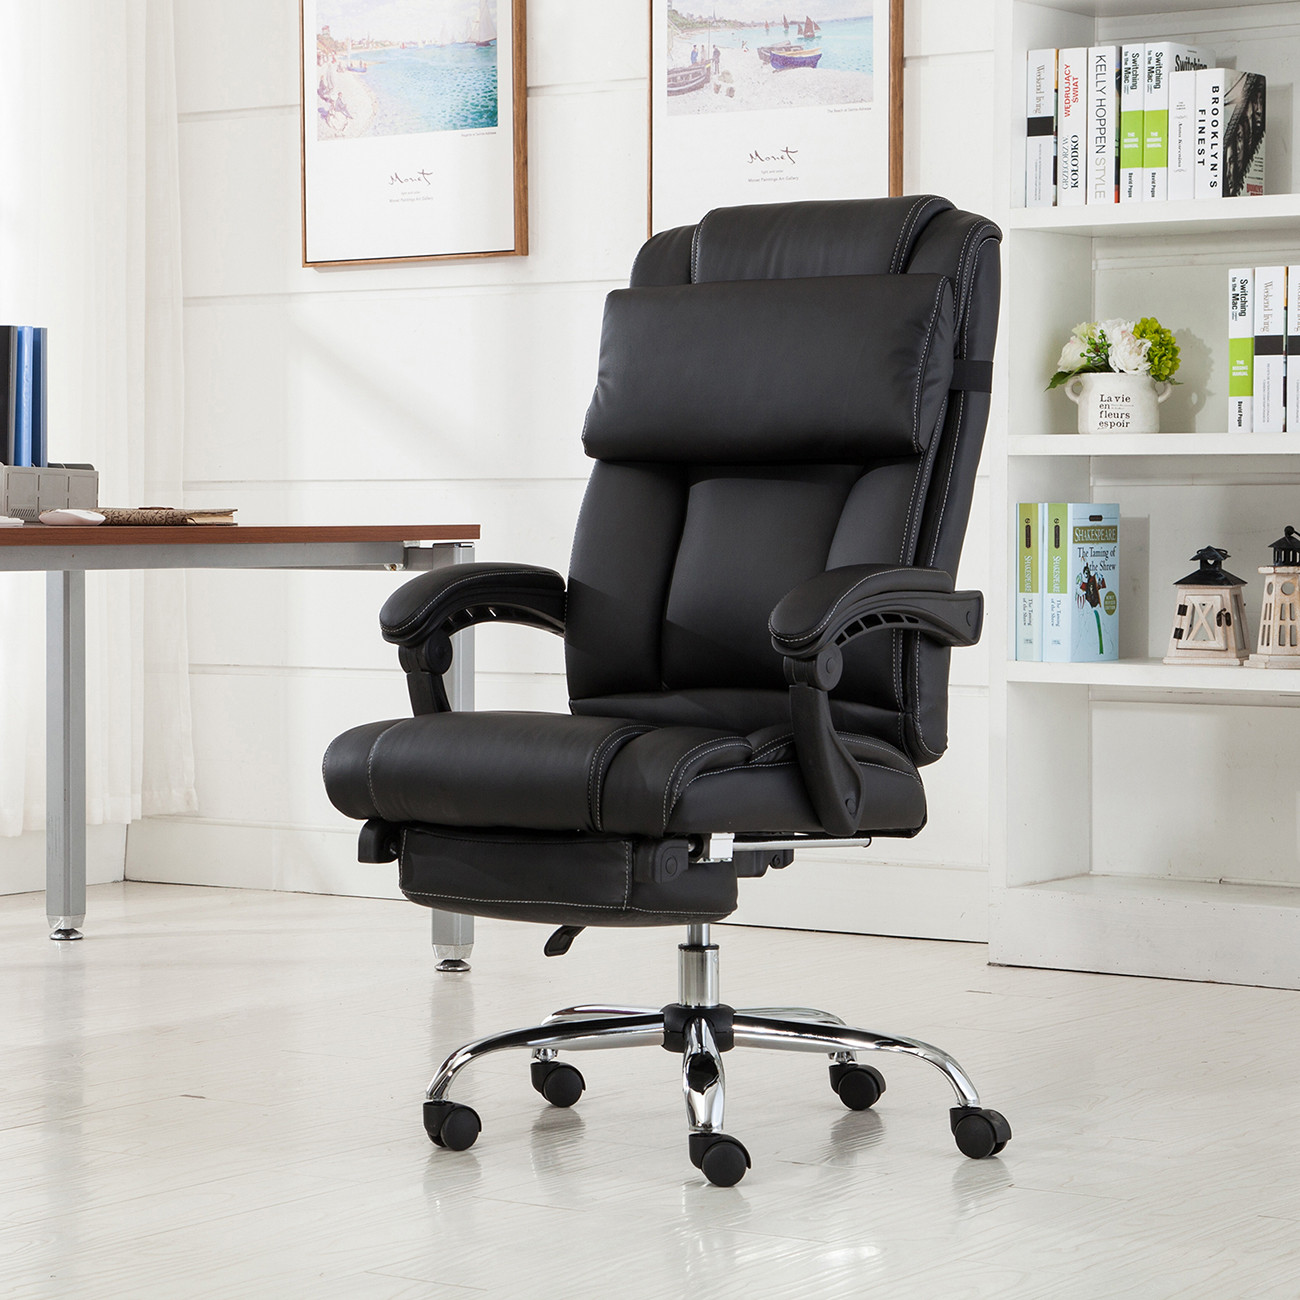 Best ideas about Office Chair Recliner . Save or Pin Executive fice Chair Ergonomic Armchair Reclining High Now.